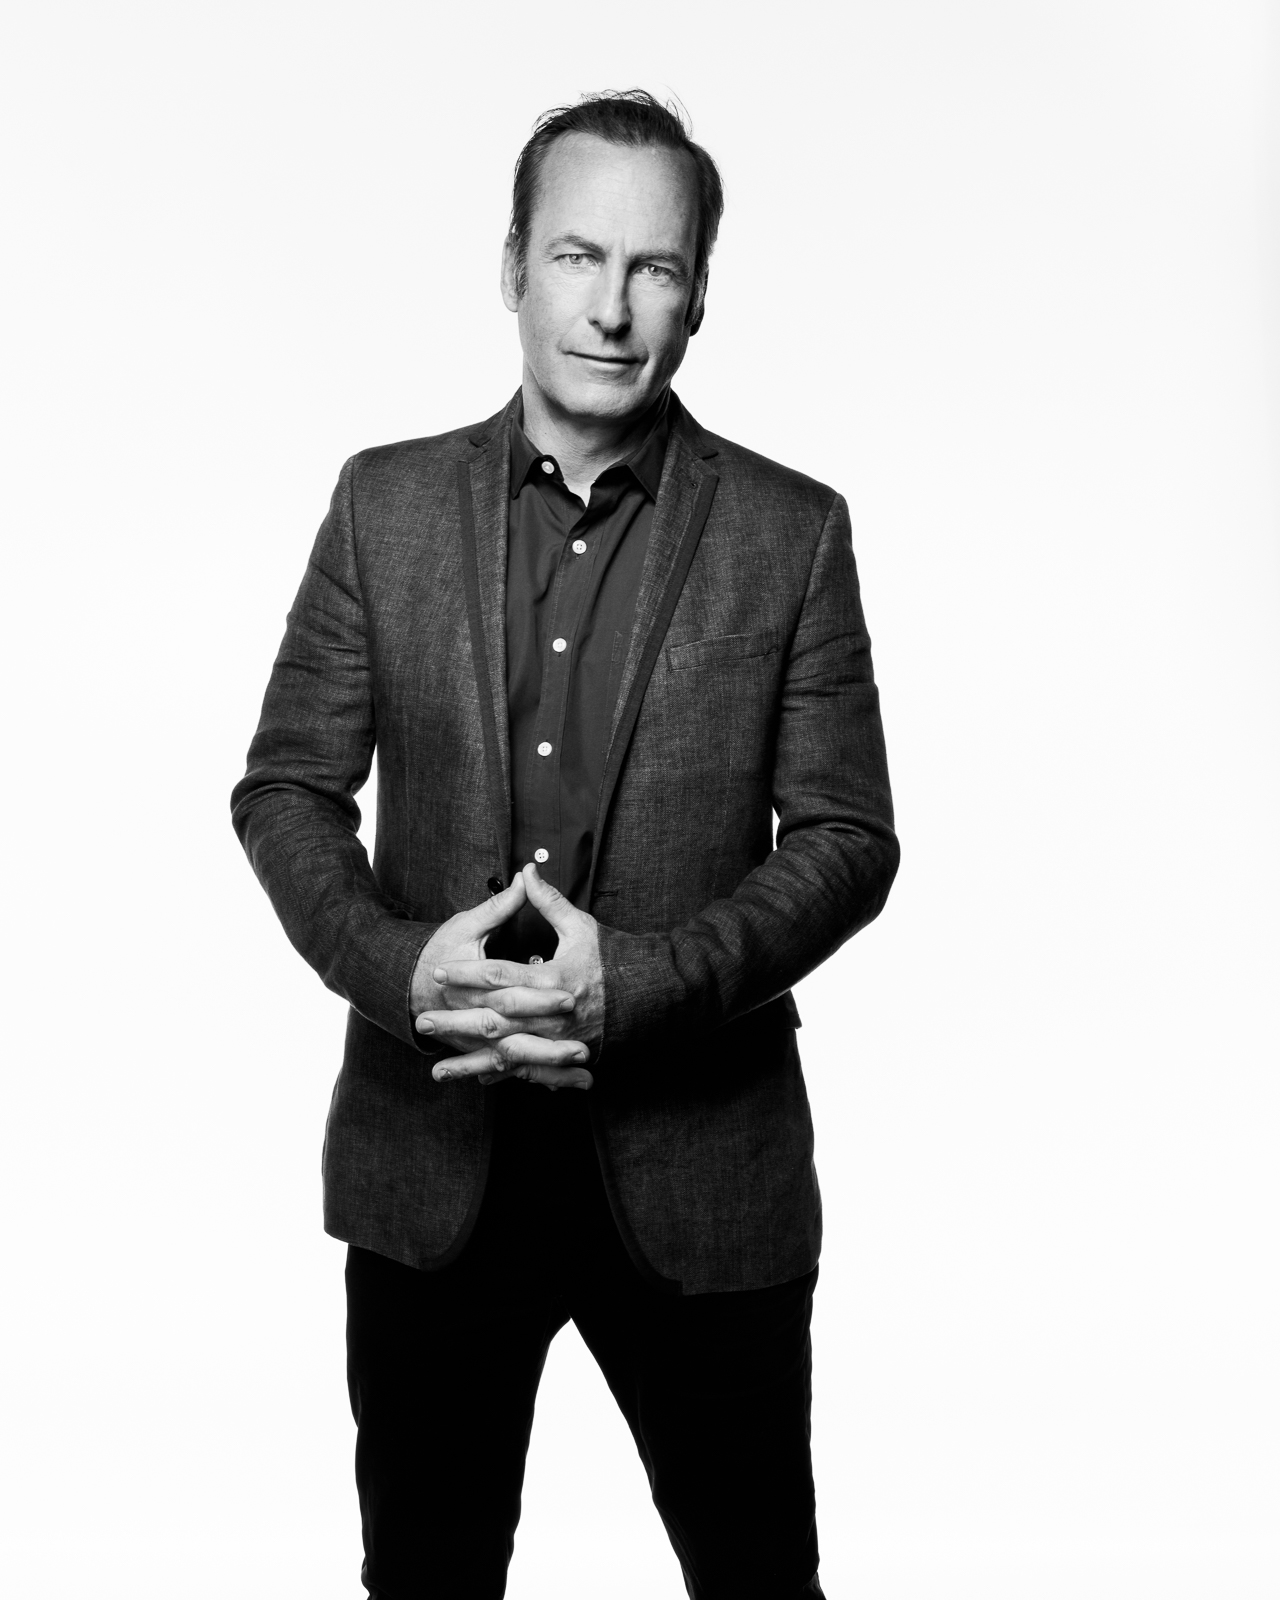 Bob Odenkirk - Better Call Saul